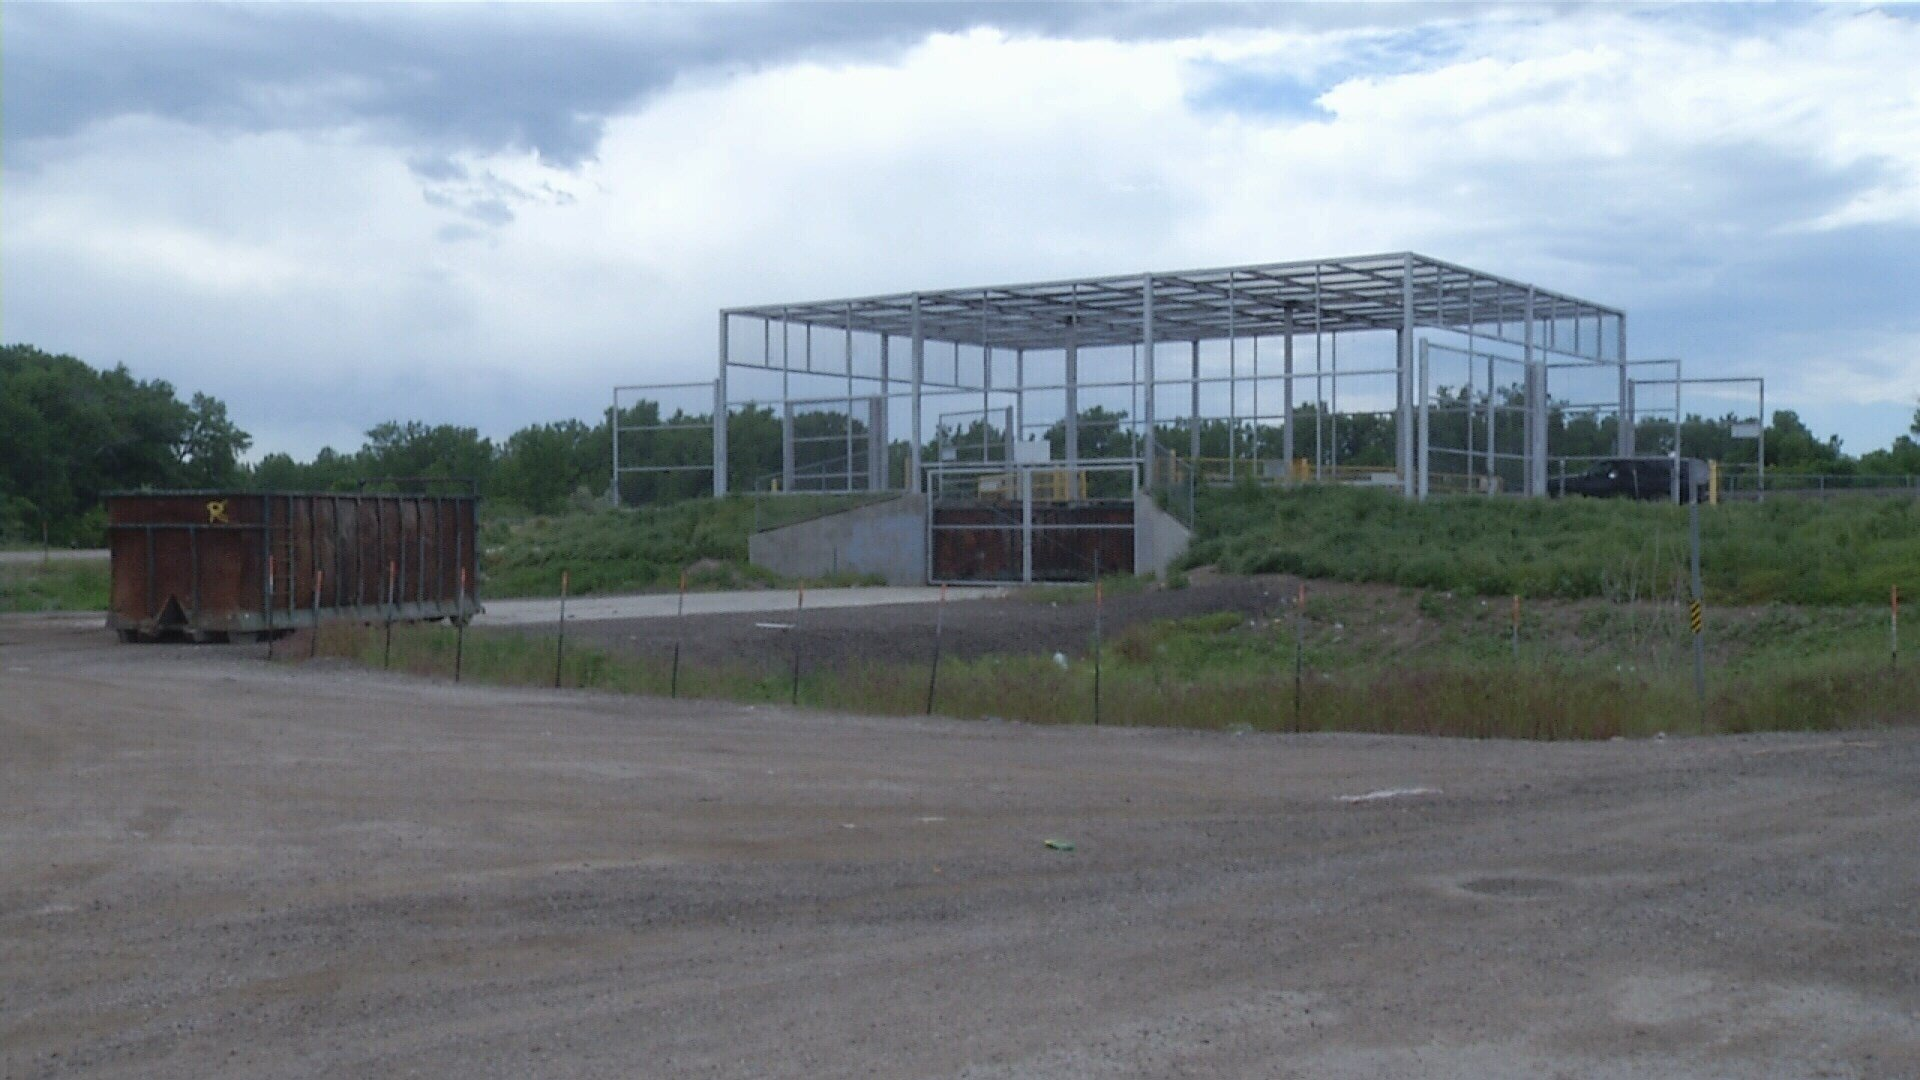 Montana big horn county wyola - Waste Pick Up Site In Lodge Grass Is One Of Three Sites Owned By Big Horn